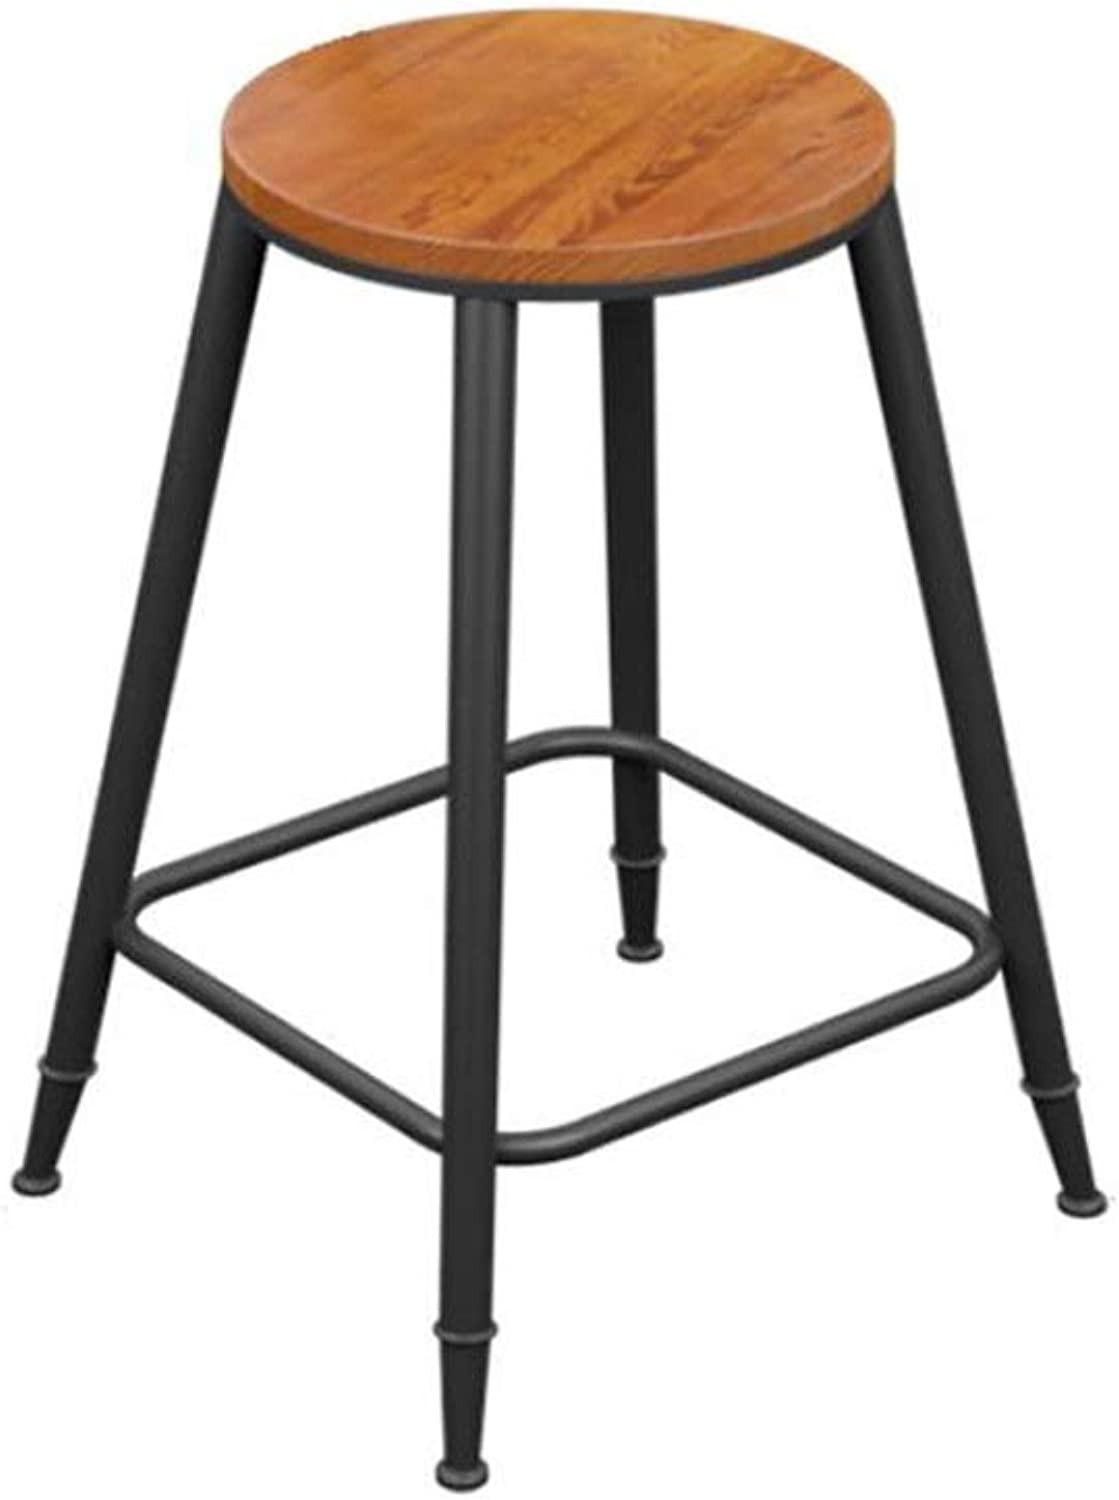 Bar Stool, Dining high Chair Breakfast Stool, Counter Round seat, Metal Legs, Carrying Capacity 150kg H  60 68 73cm (Multiple Choice) (Size   40x40x60cm)